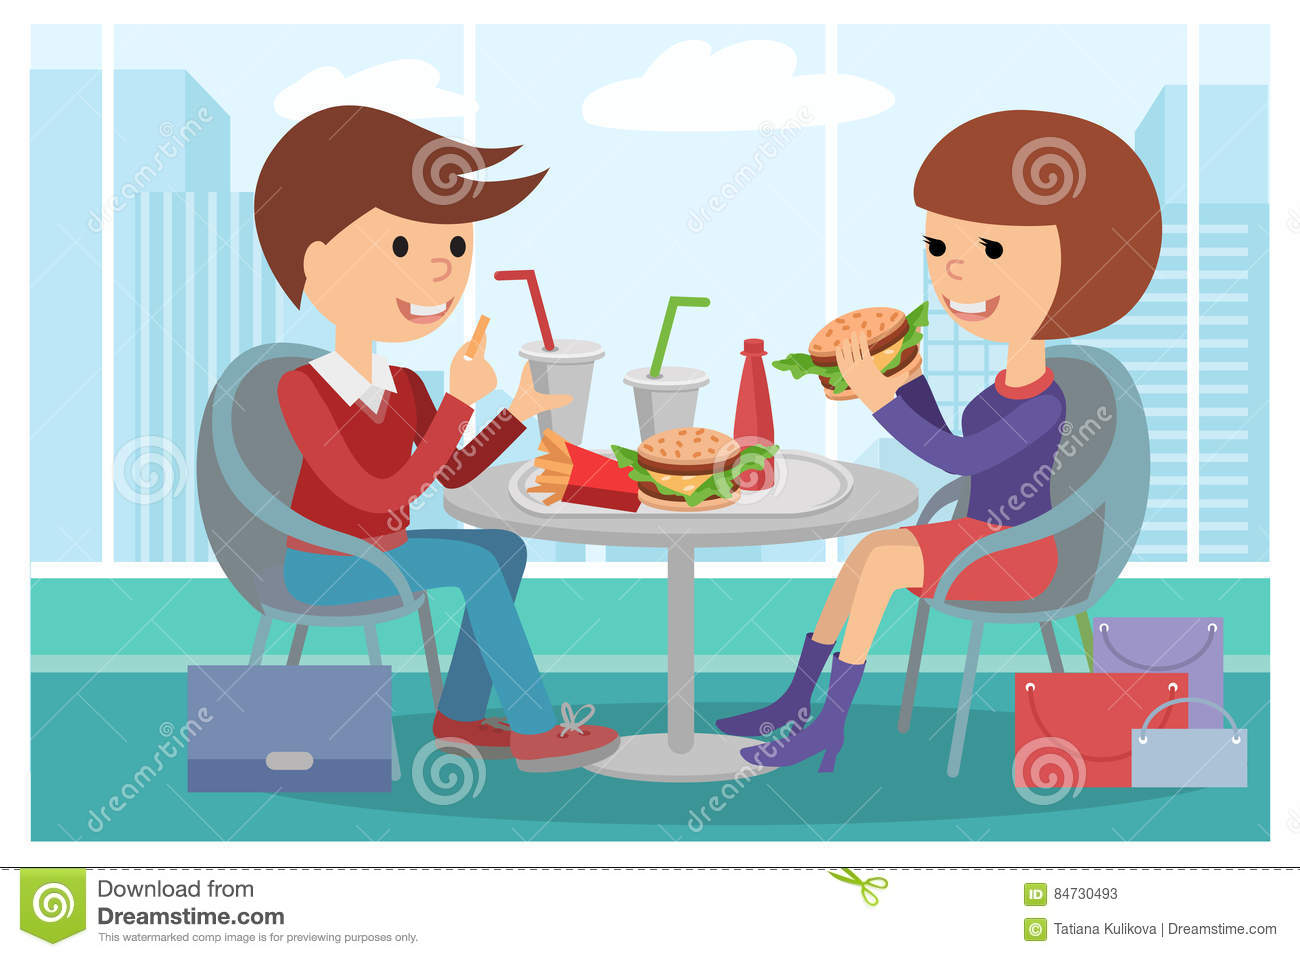 Girl And Boy Eating Fast Food Vector Illustration Of A People At Table With Sandwiches Drinks